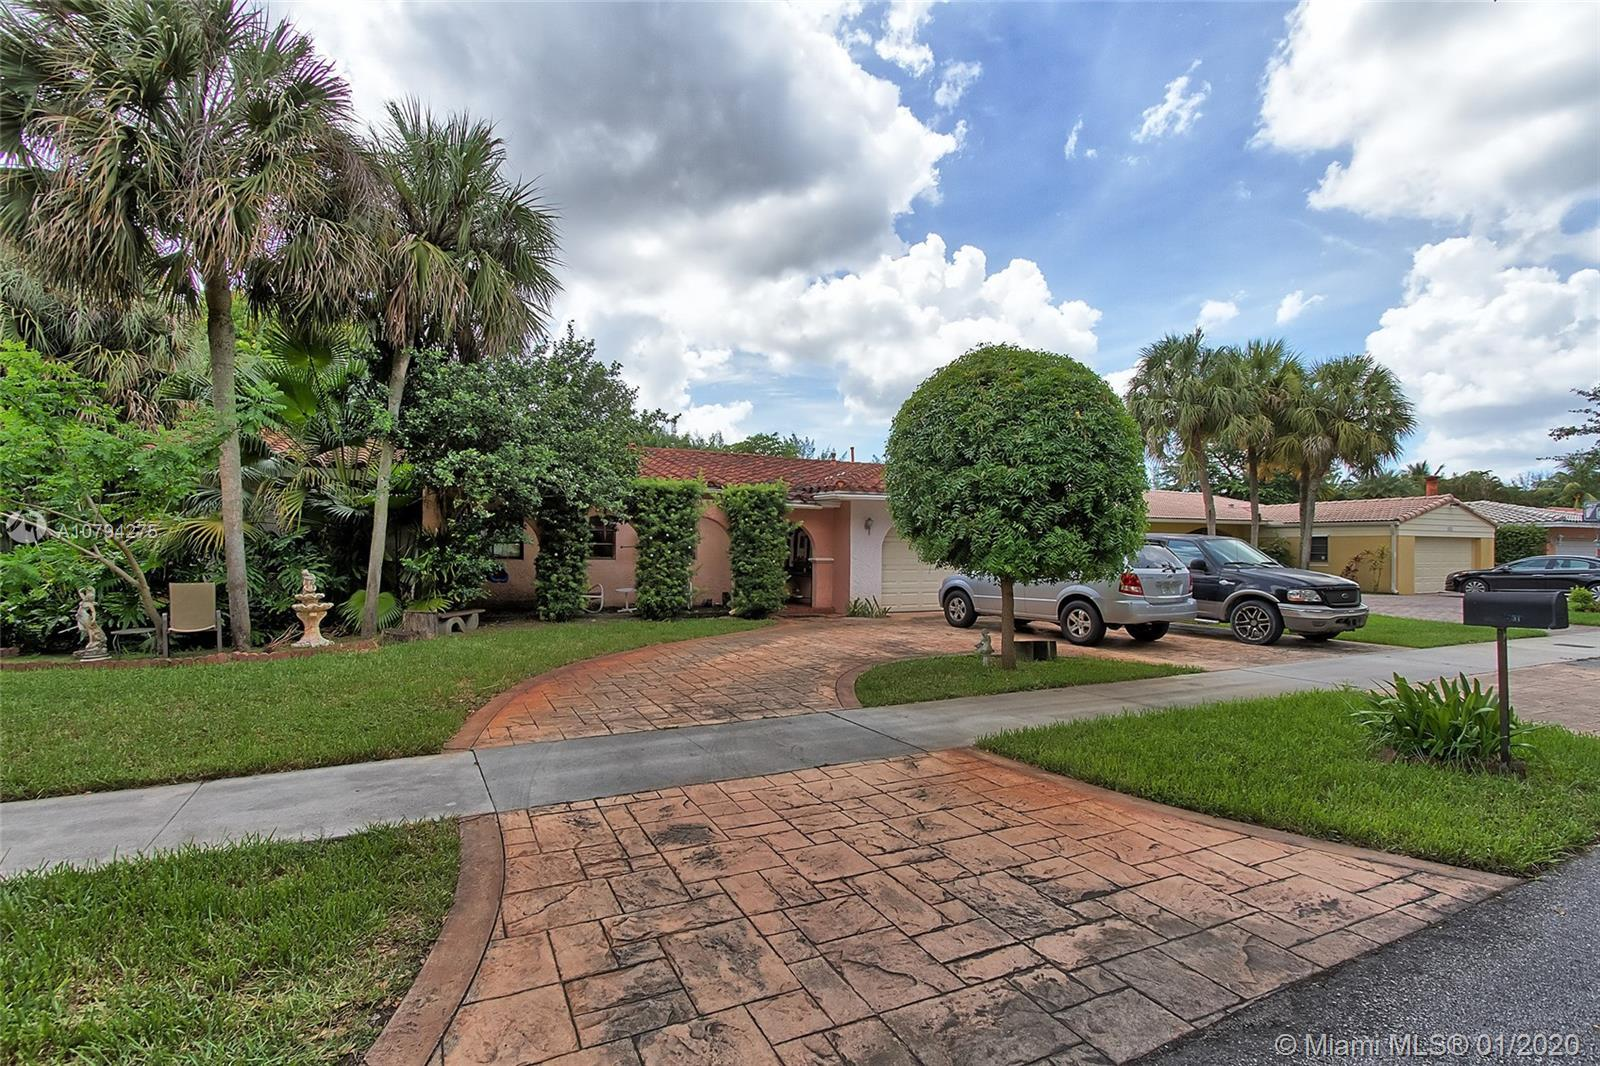 Location, Location, Location ! One look at this 4 Bedroom 2 Bathroom POOL house in the heart of Miam